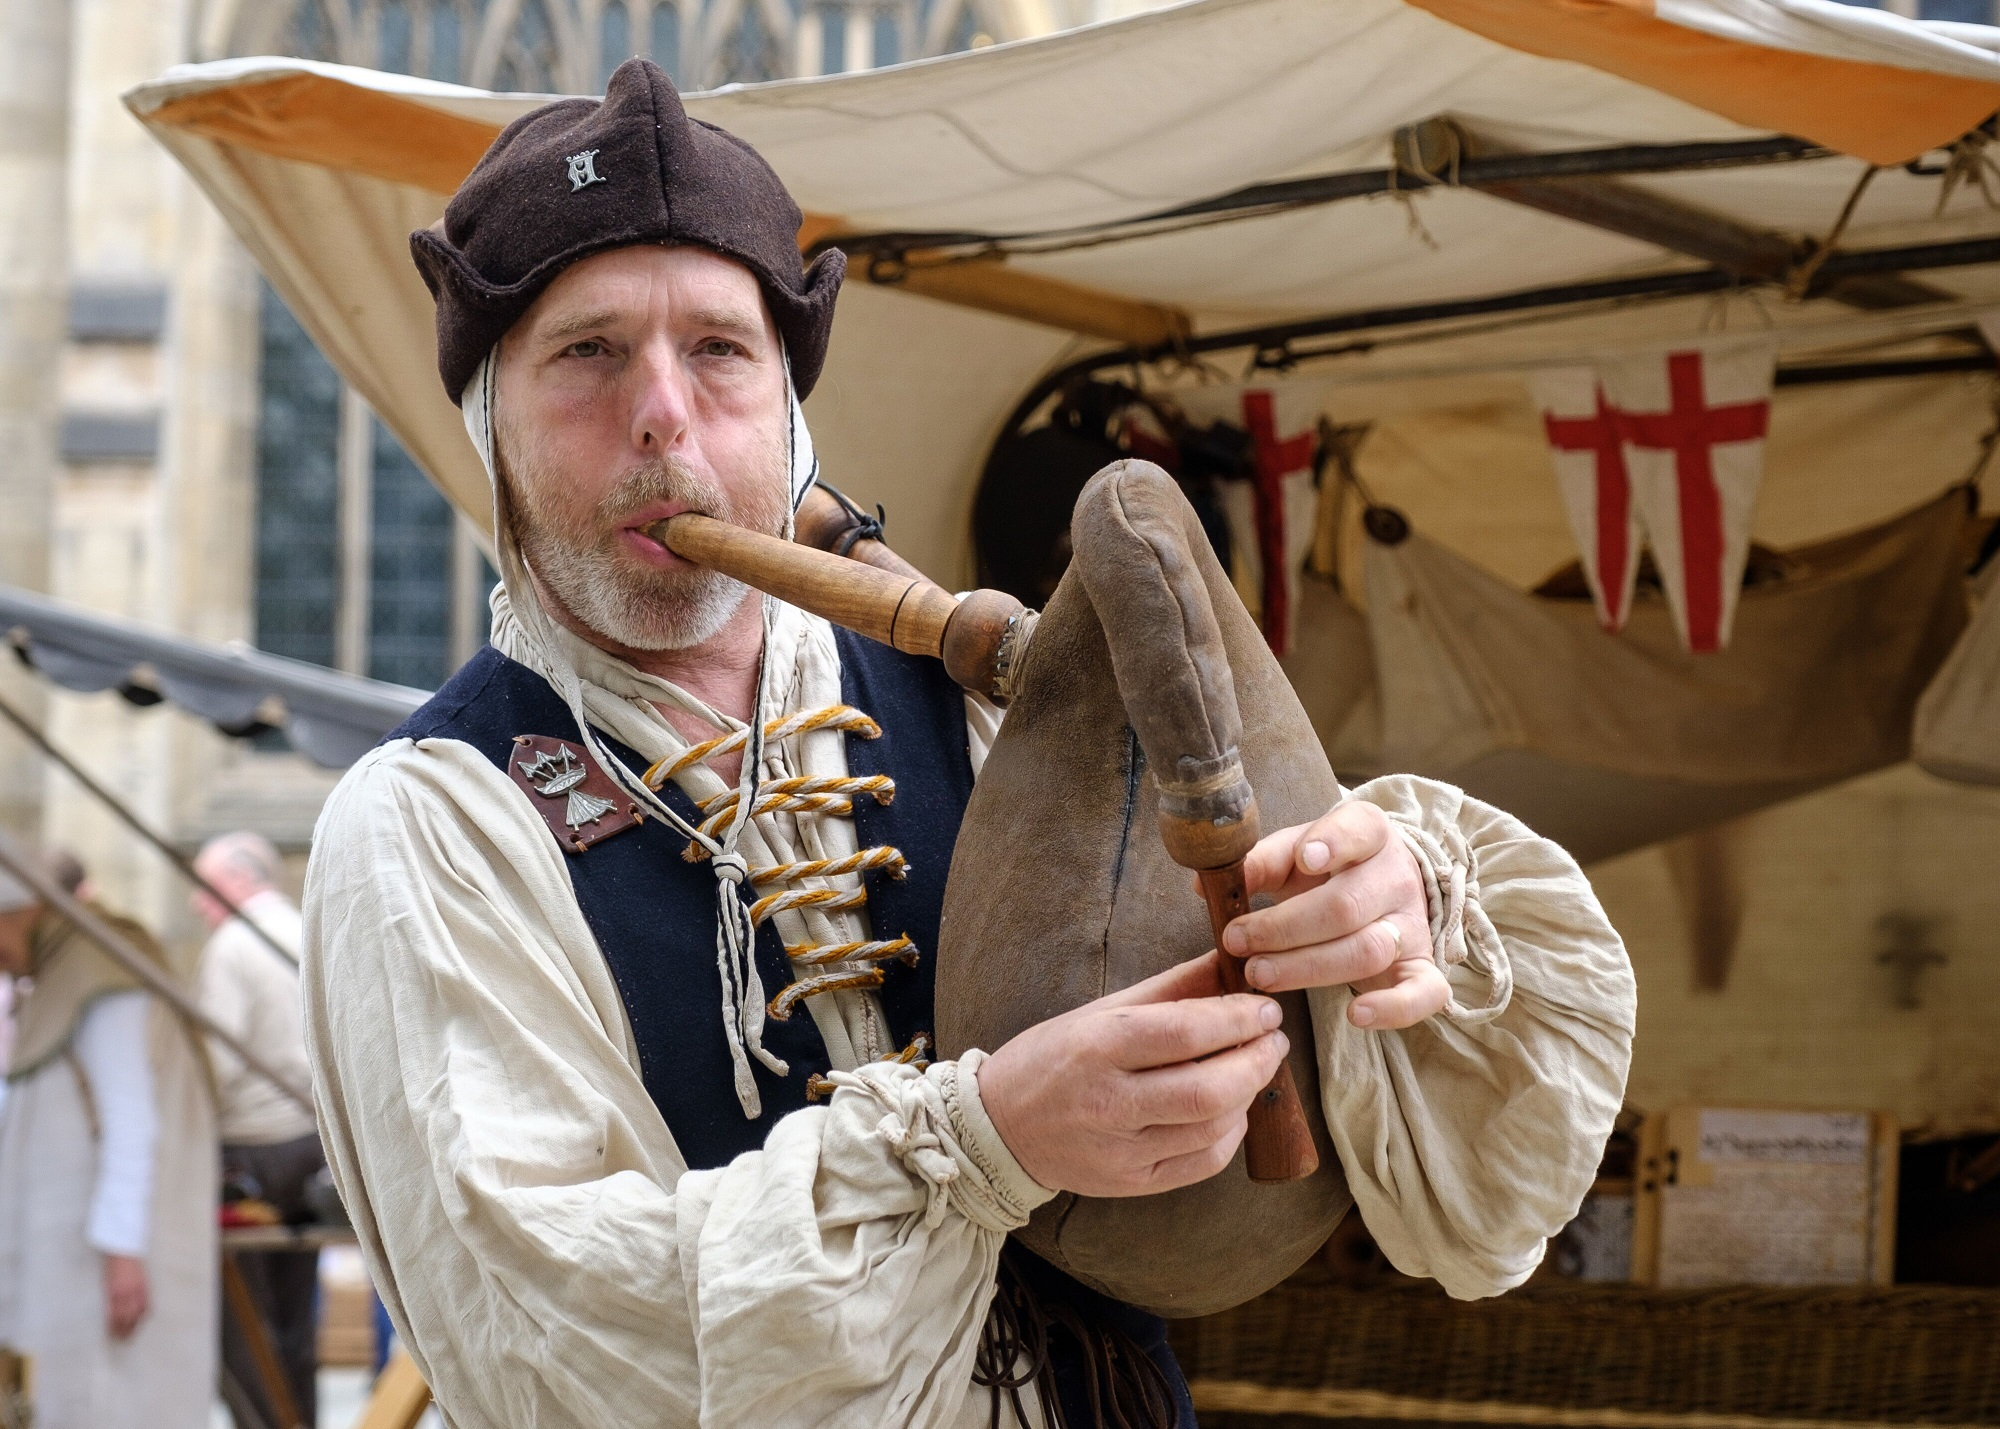 Lord Mayor's Hanse Day 2019 is a combination of International Hanse Day and the Lord Mayor's Gala.